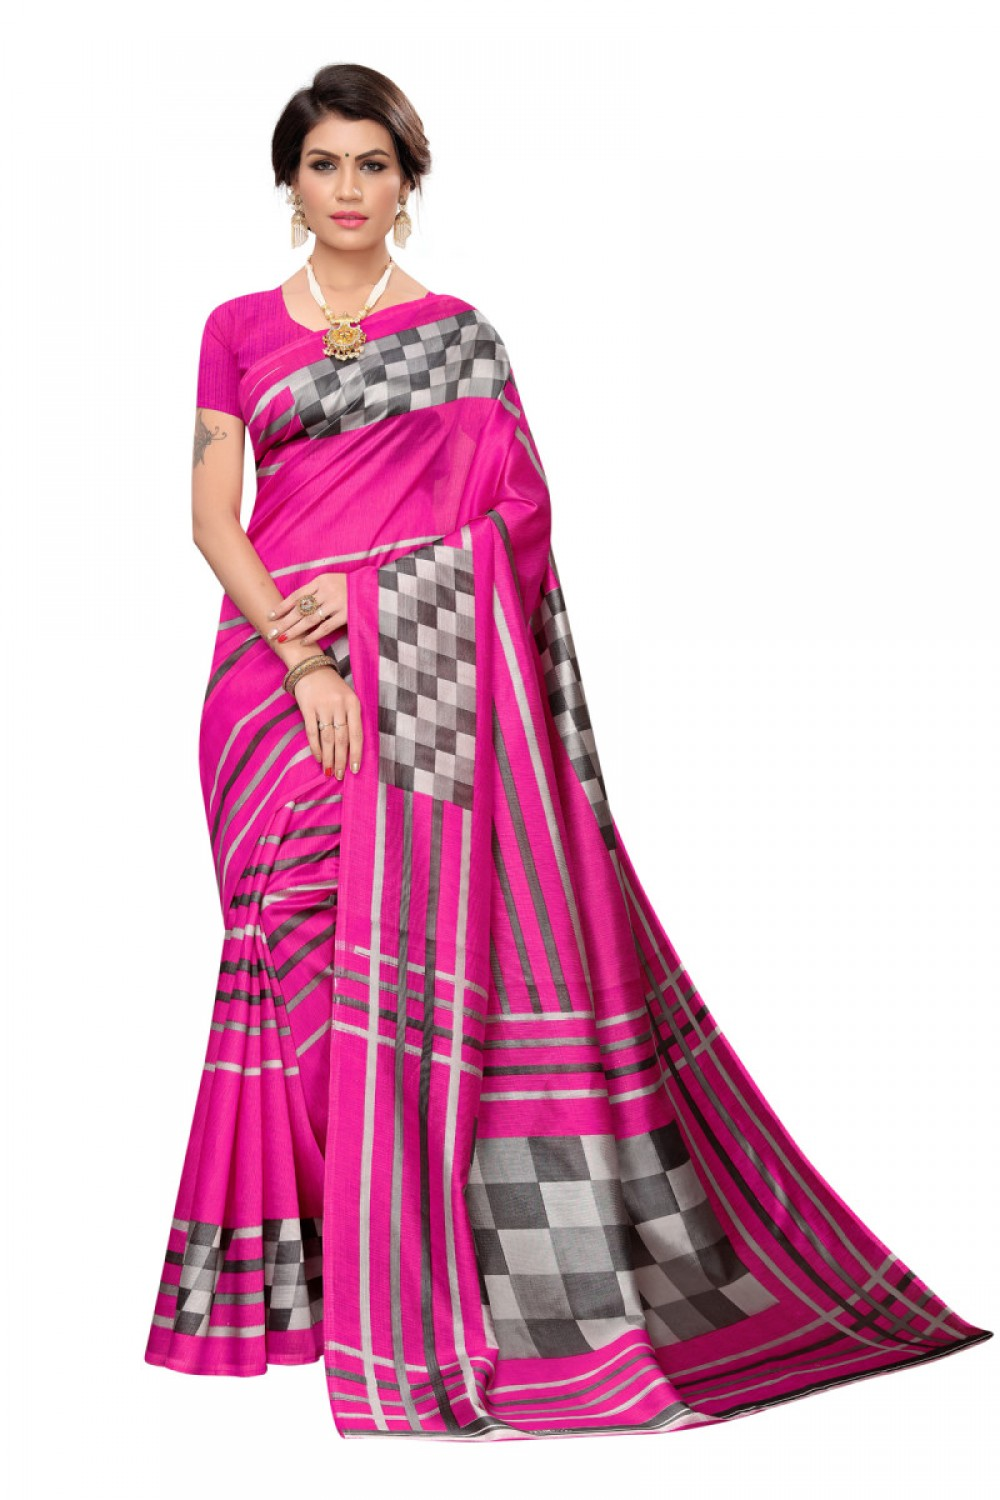 Adorable Pink Colour Casual wear Denting saree